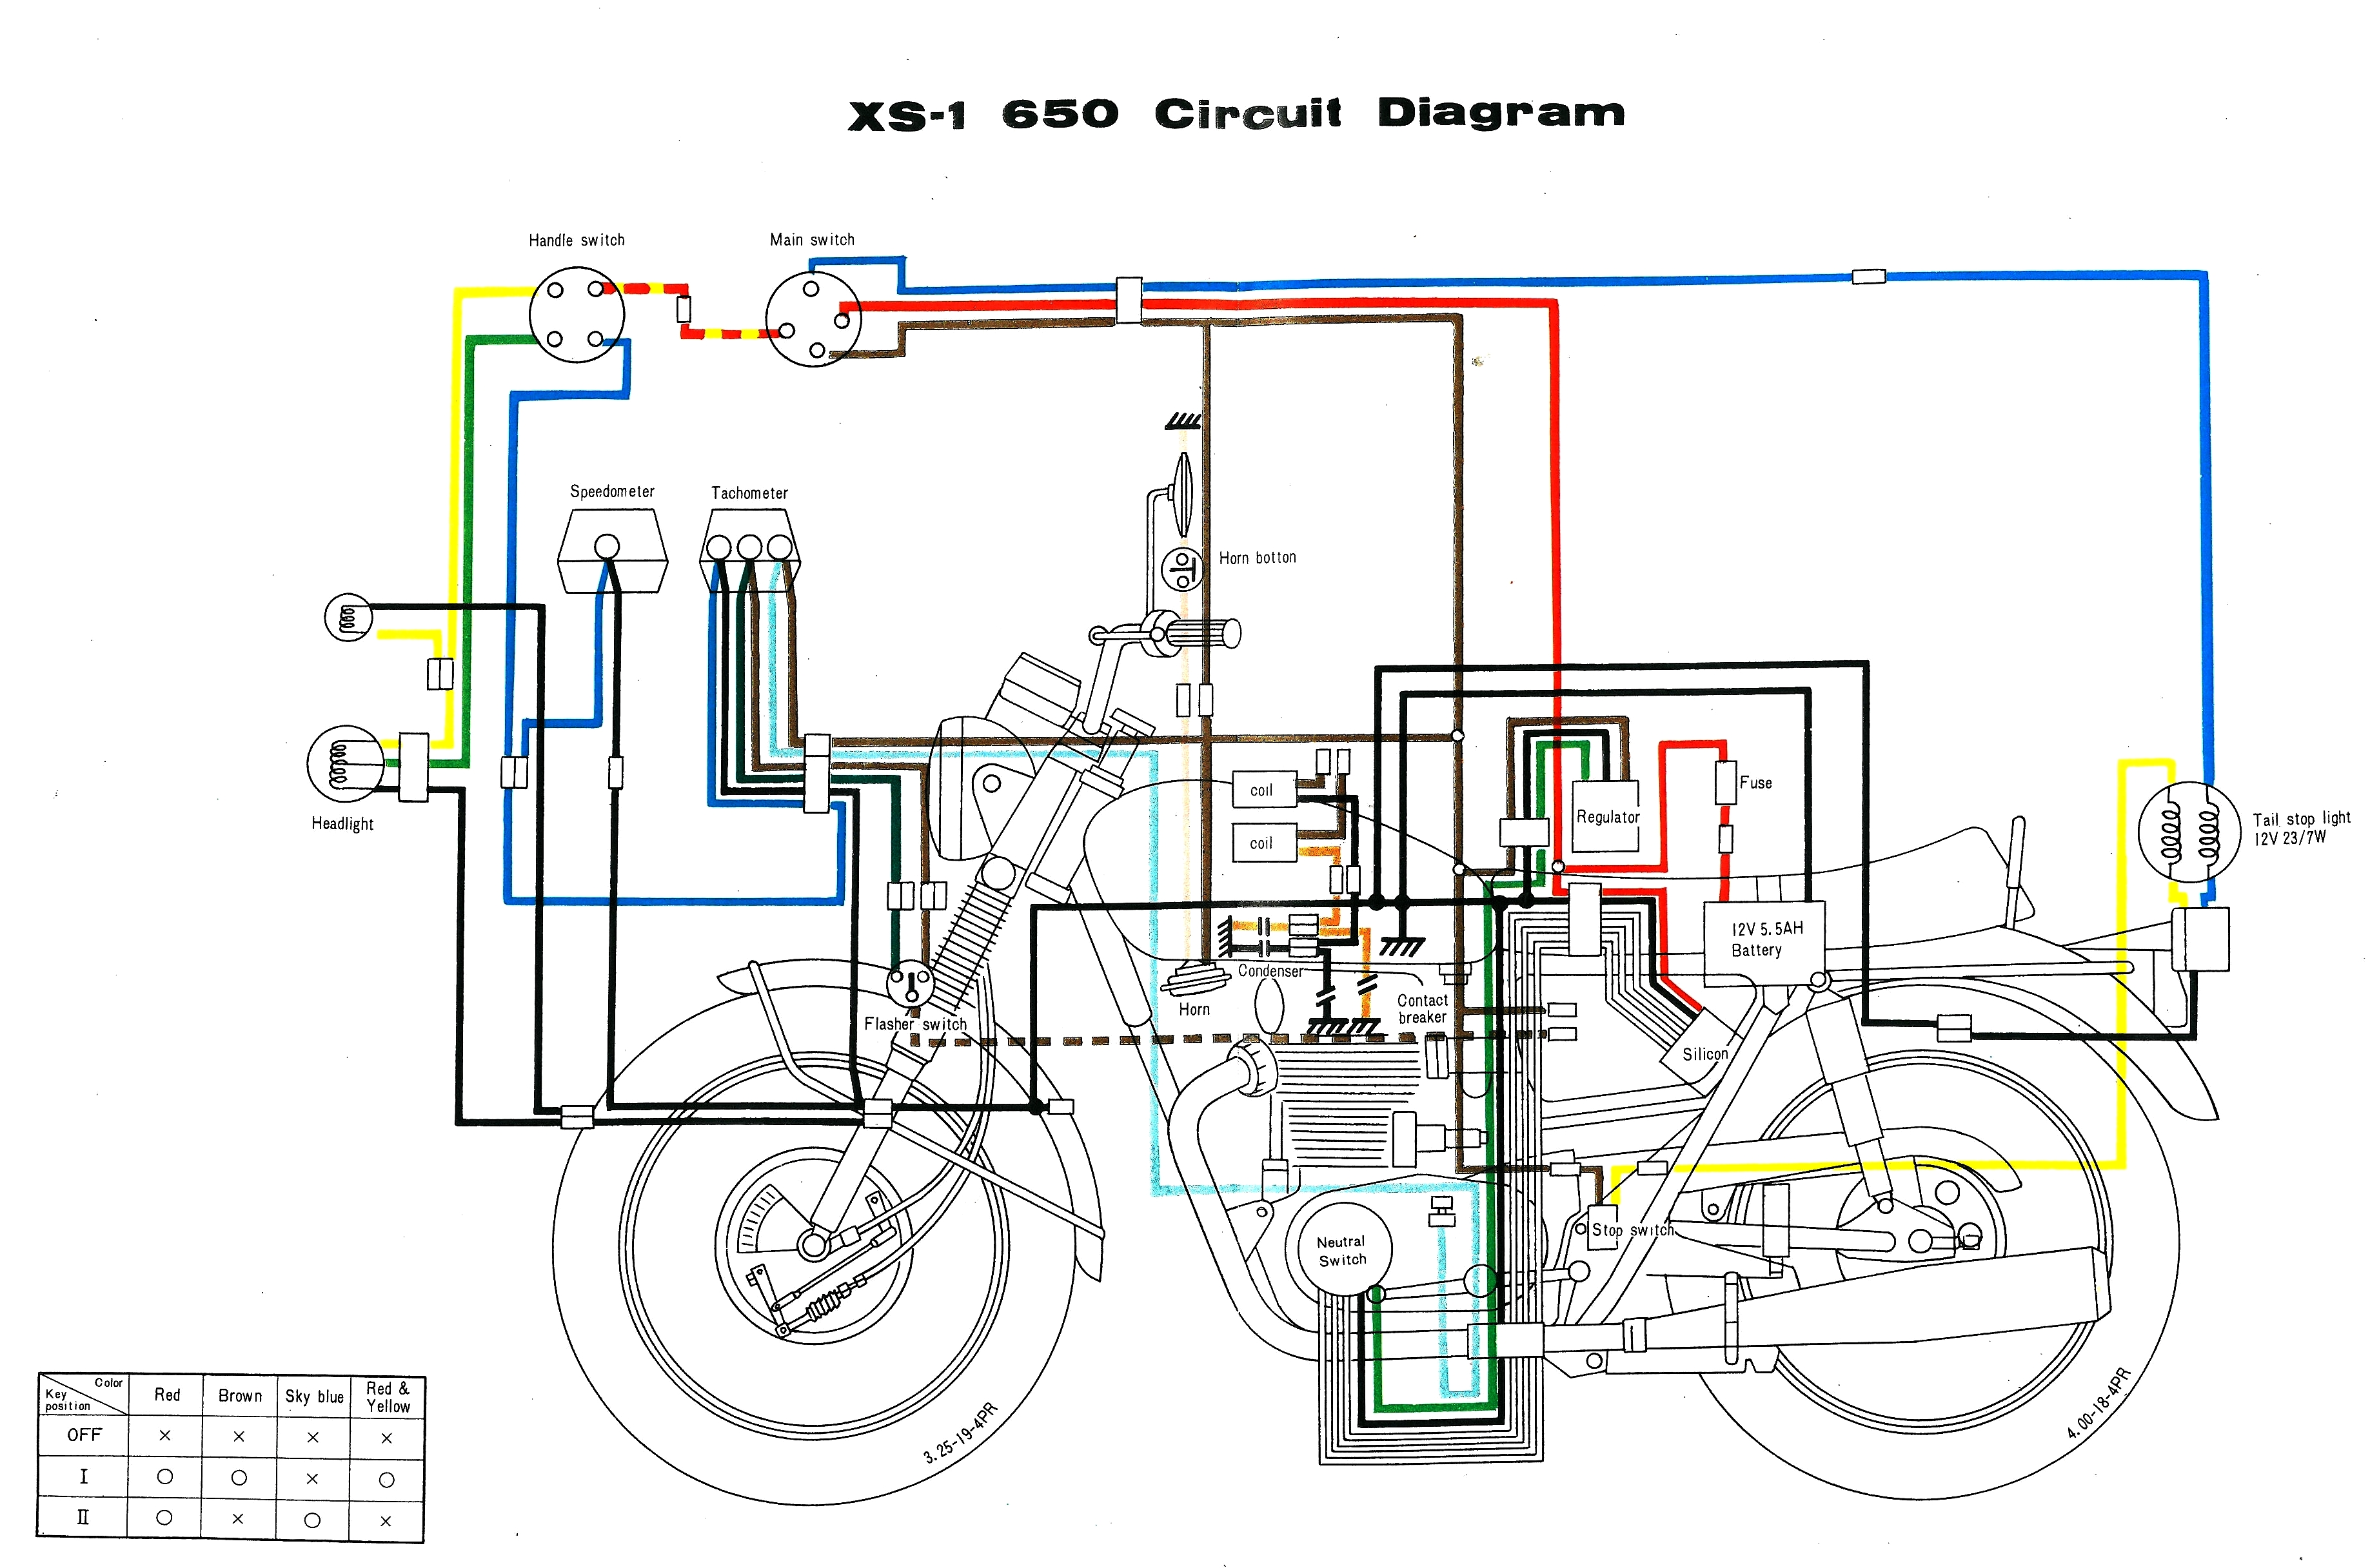 xvs650 wiring diagram ihca newbalanceprocourt uk \u2022v star 650 wiring diagram wiring diagram rh 19 vgc2018 de xs650 wiring diagram 1998 yamaha